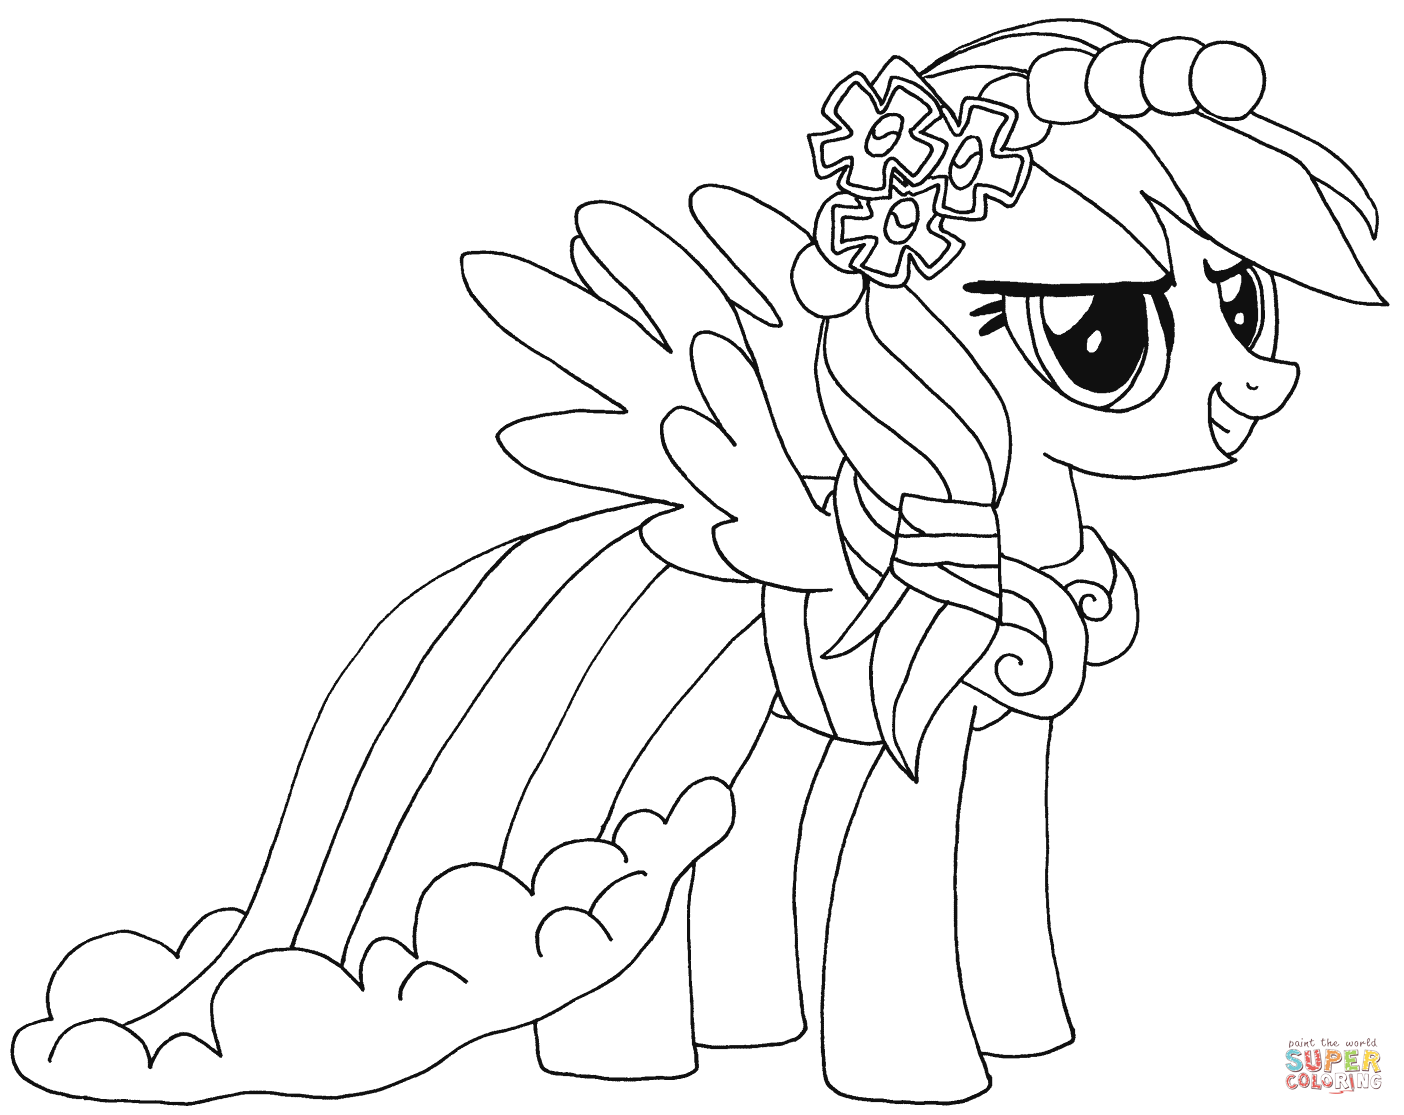 rainbow dash pictures to color ausmalbild rainbow dash ausmalbilder kostenlos zum pictures to rainbow dash color